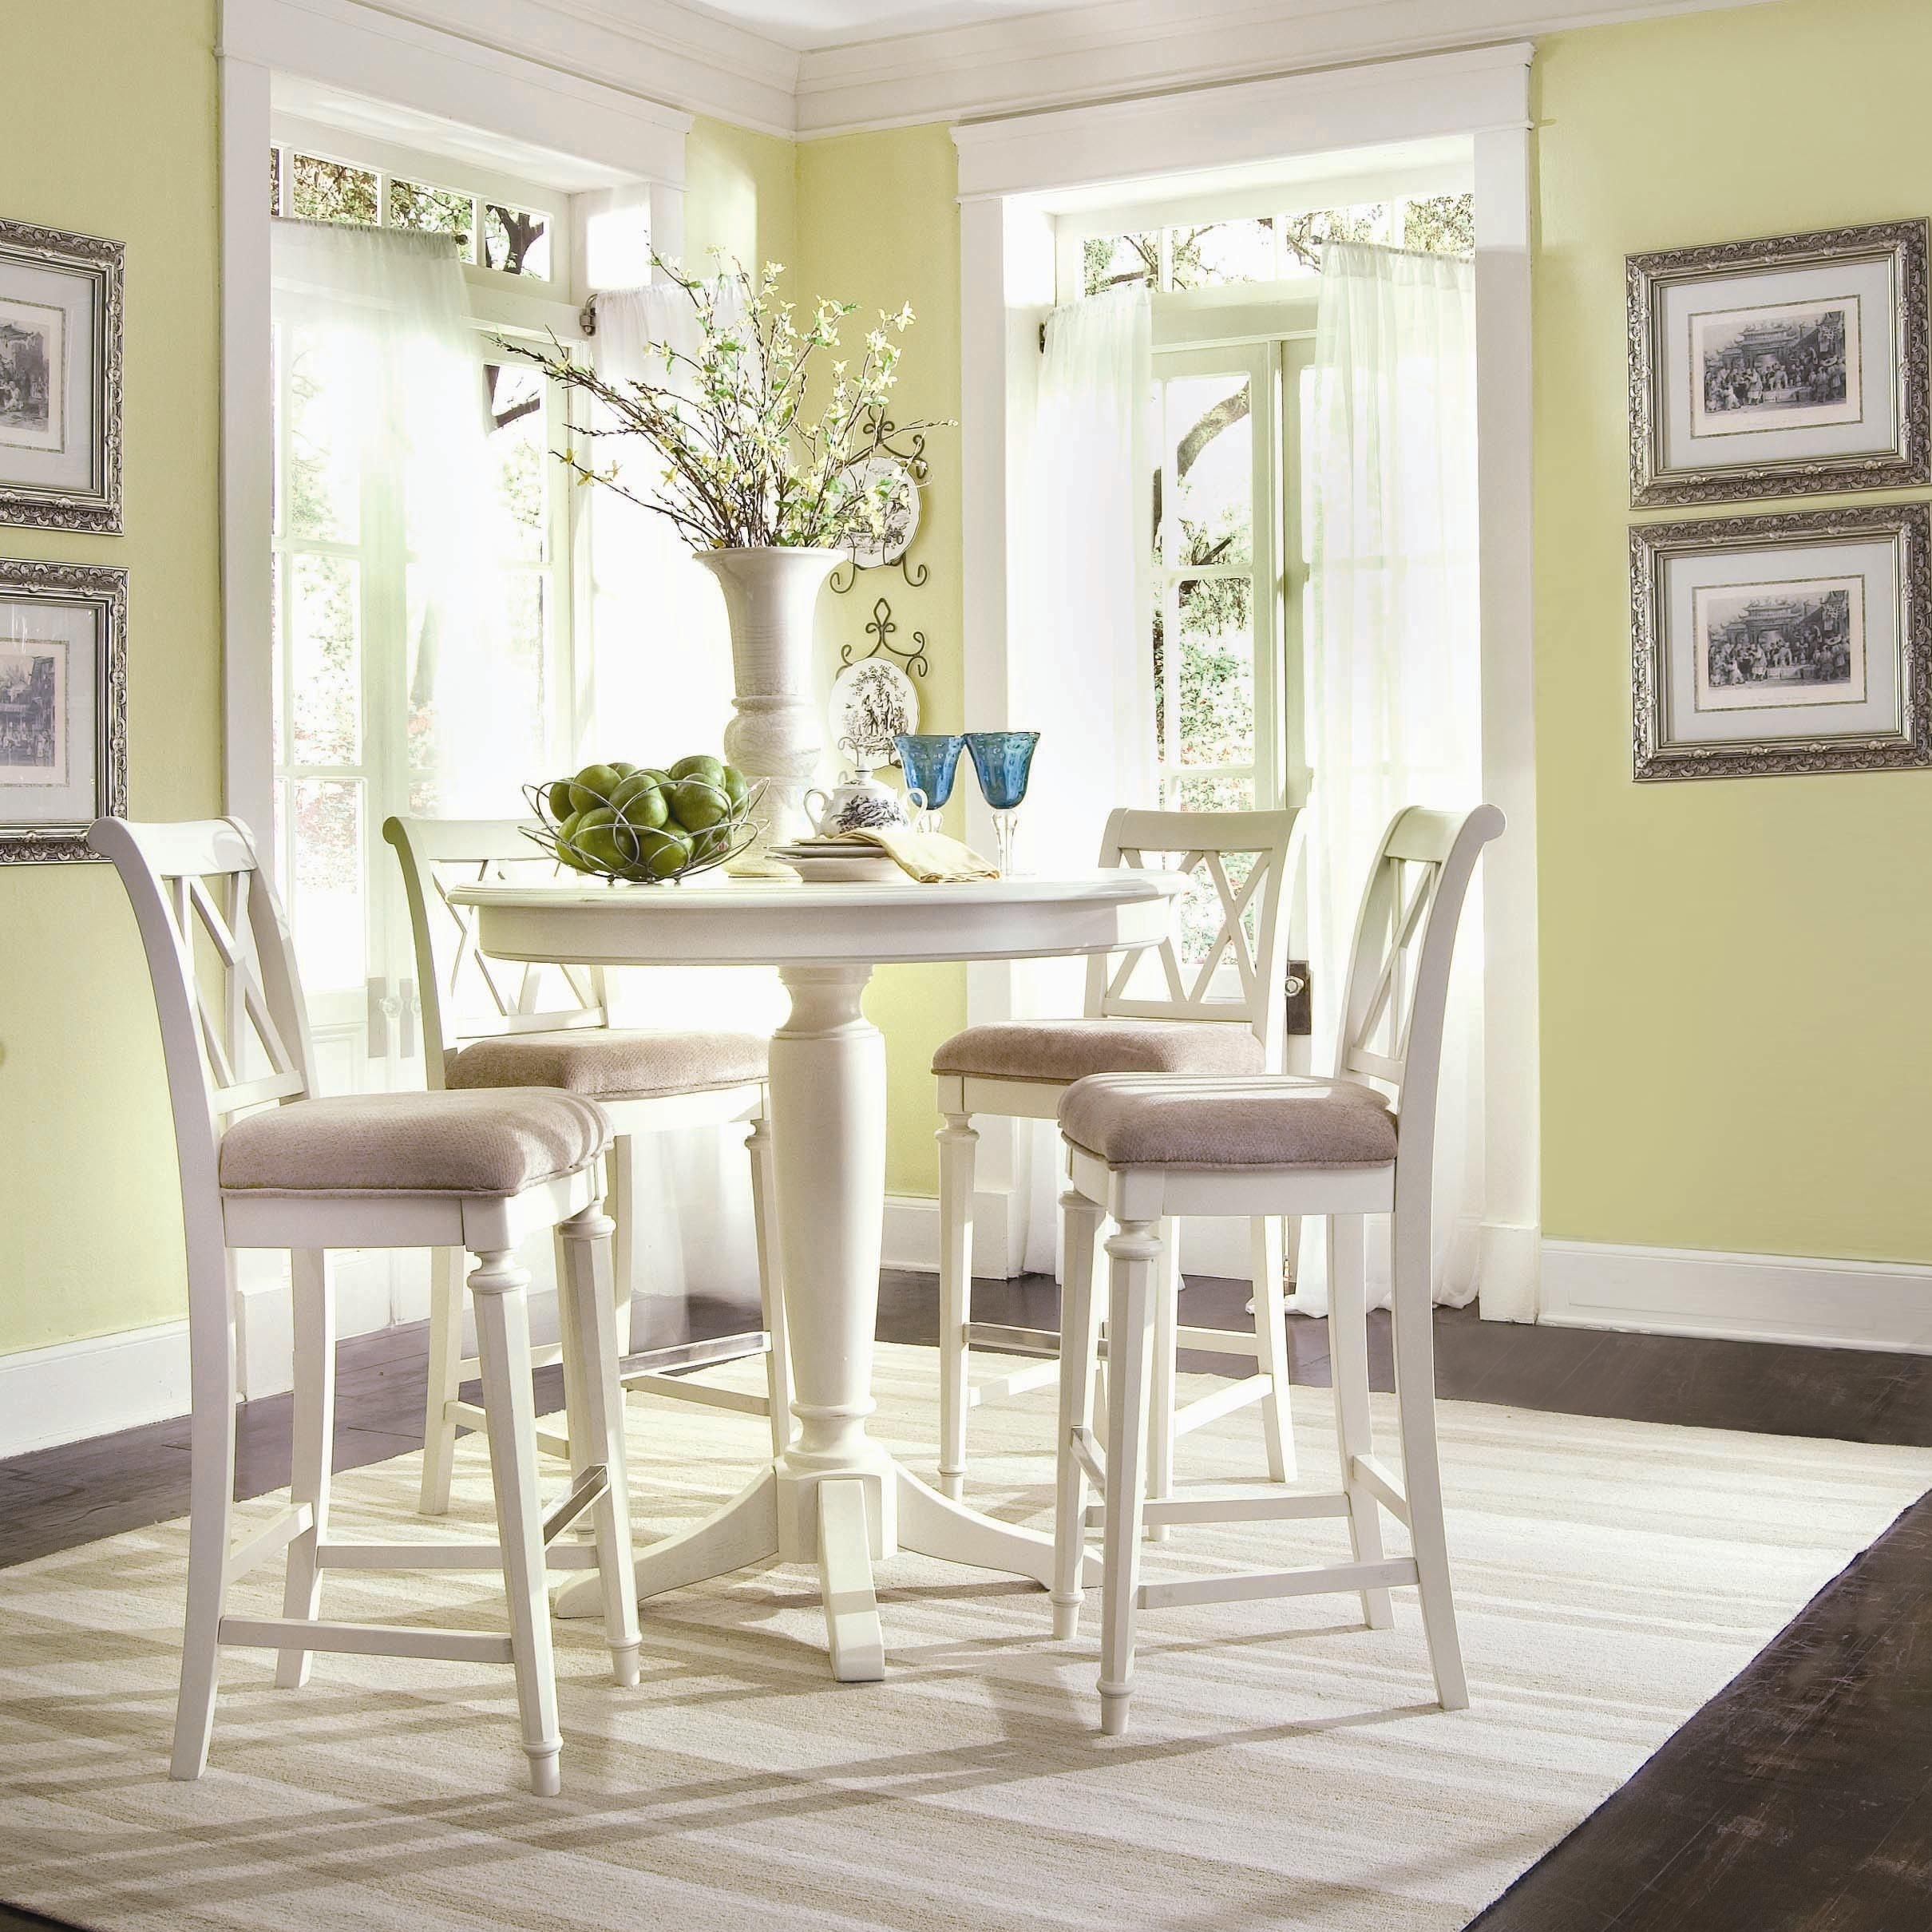 Create A Cottage Look With A Small Gathering Table! #cottage #life Intended For Most Up To Date Palazzo 7 Piece Dining Sets With Pearson Grey Side Chairs (Image 6 of 20)